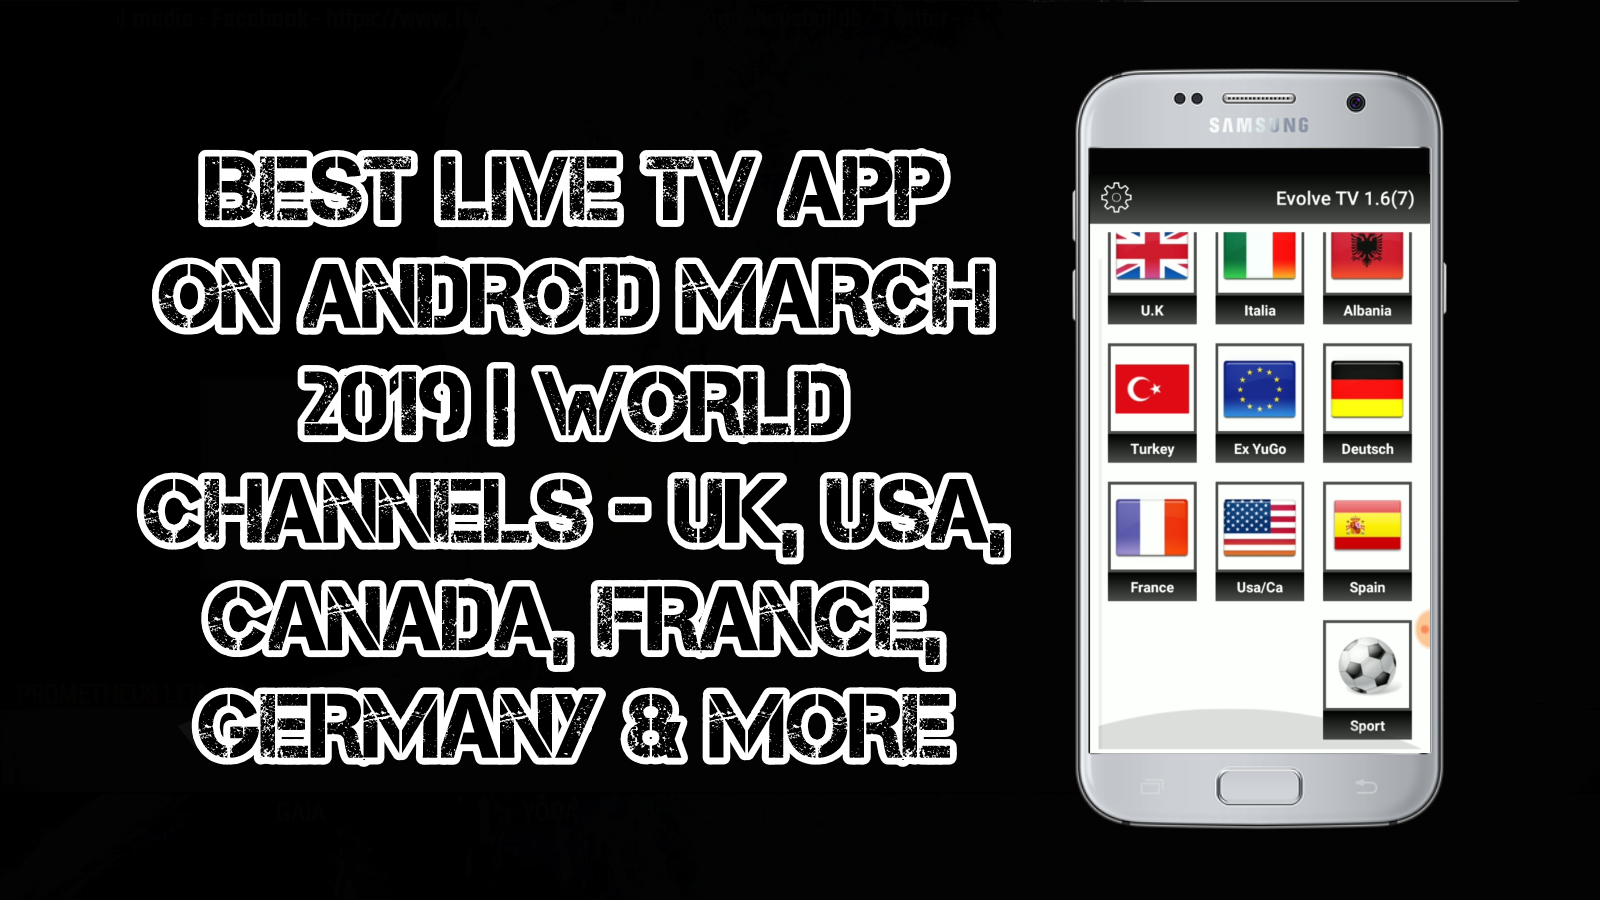 BEST LIVE TV APP ON ANDROID MARCH 2019 WORLD CHANNELS - UK, USA